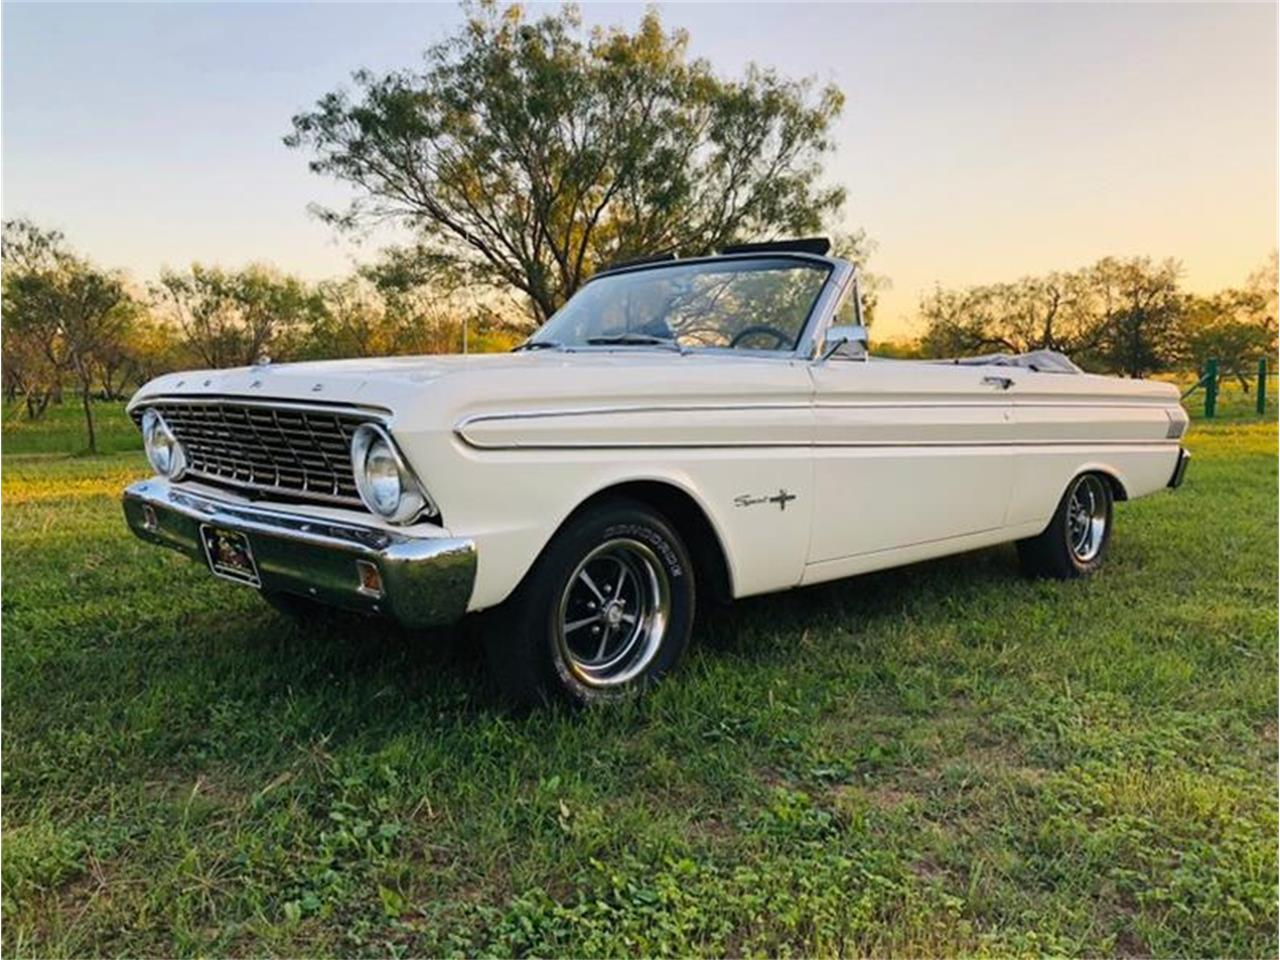 For Sale: 1964 Ford Falcon in Fredericksburg, Texas